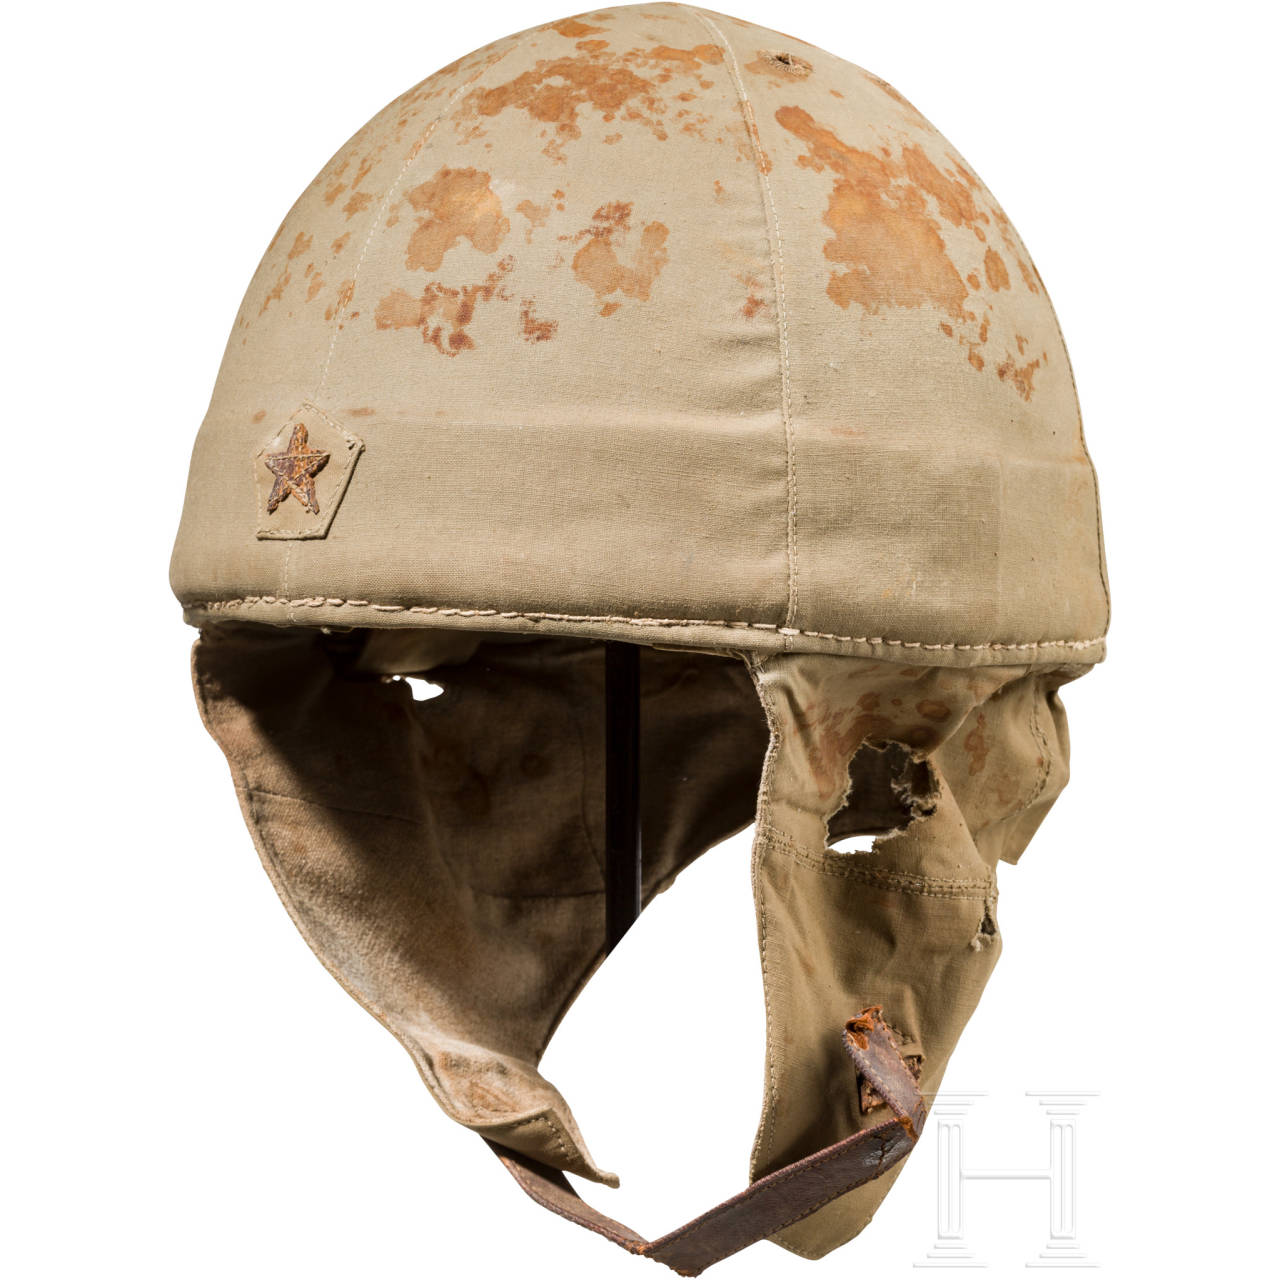 A paratrooper helmet, 2nd World War